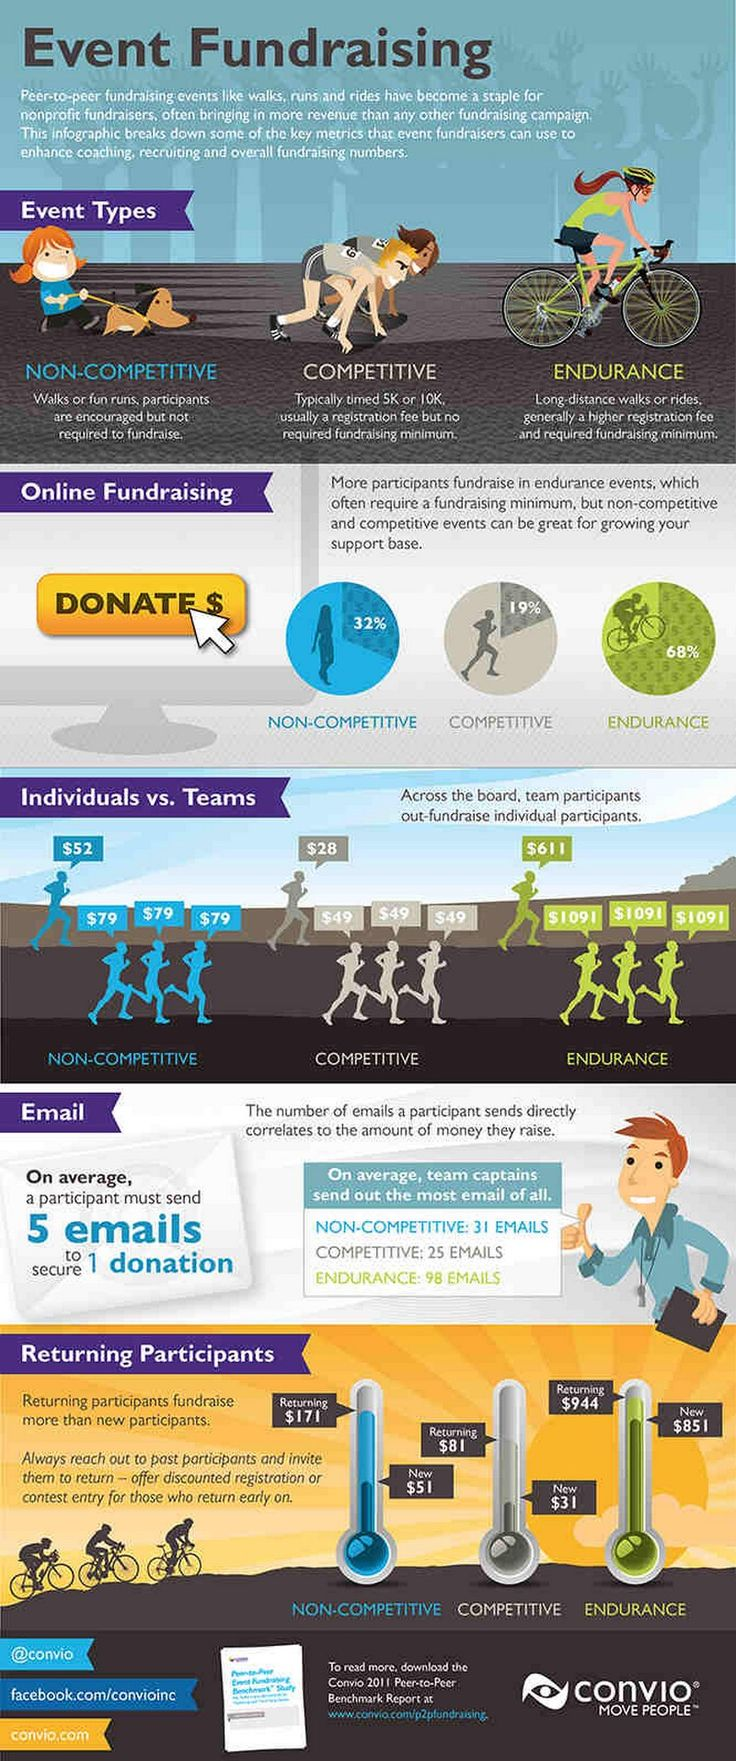 fundraising infographic : Event Fundraising | Infographic Zone